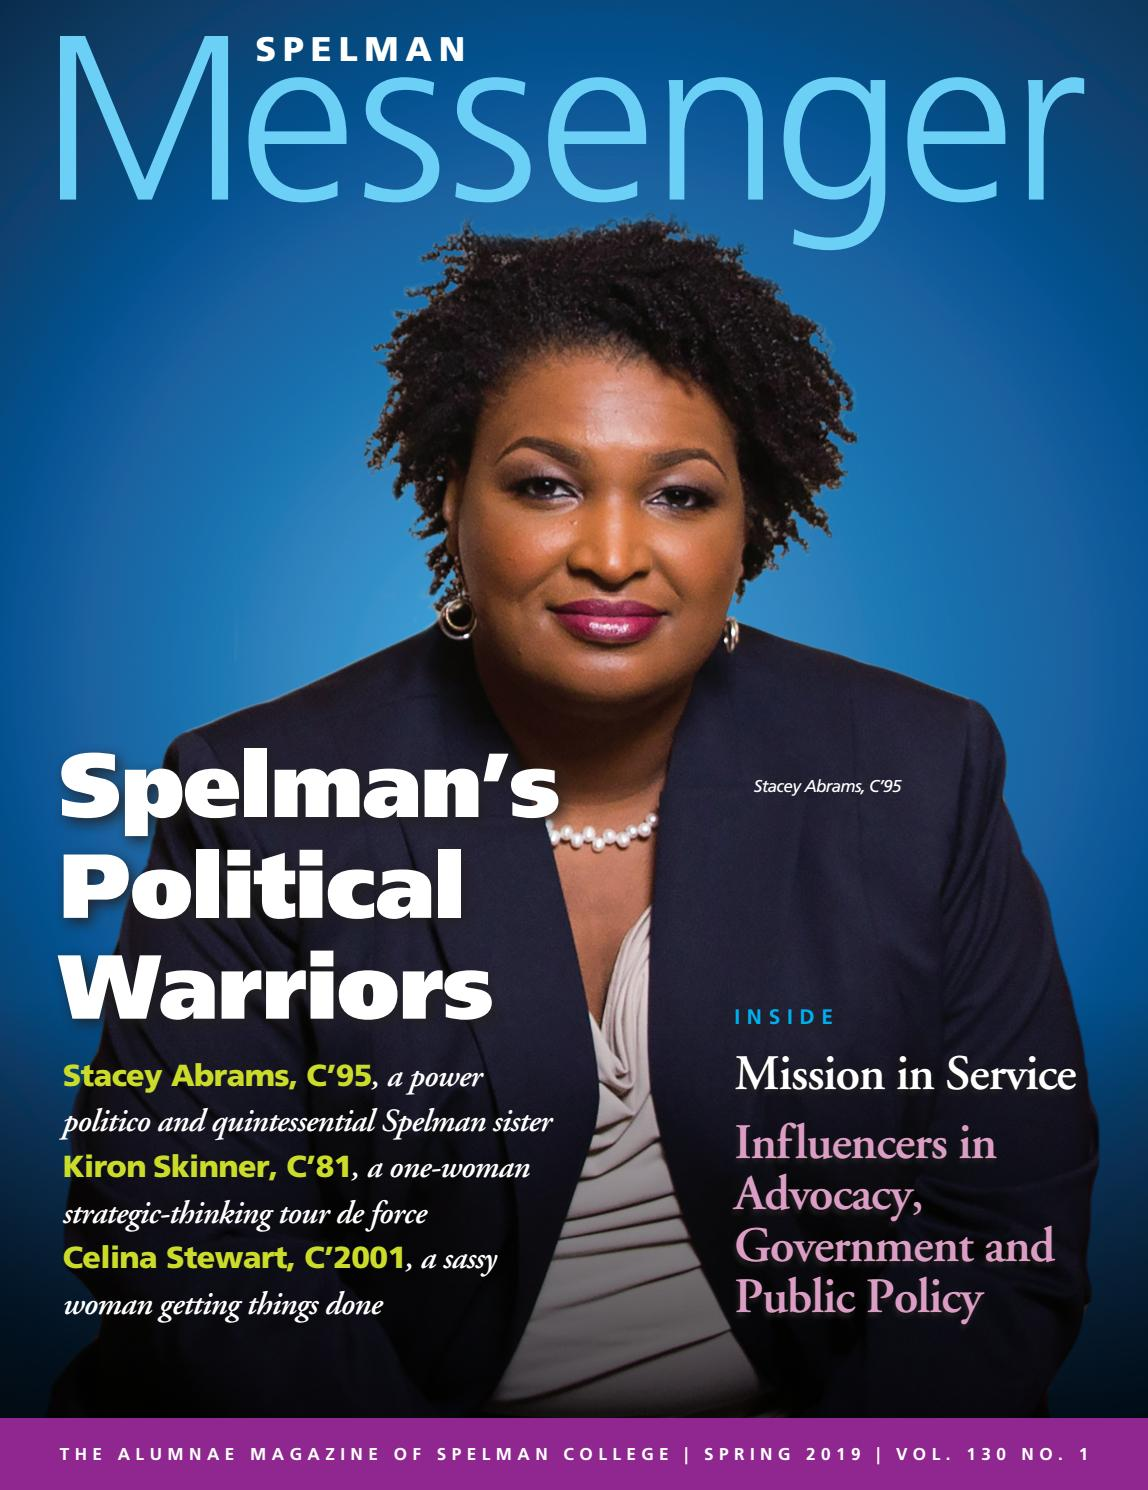 Spelman Messenger spring 2019 by Spelman College - issuu